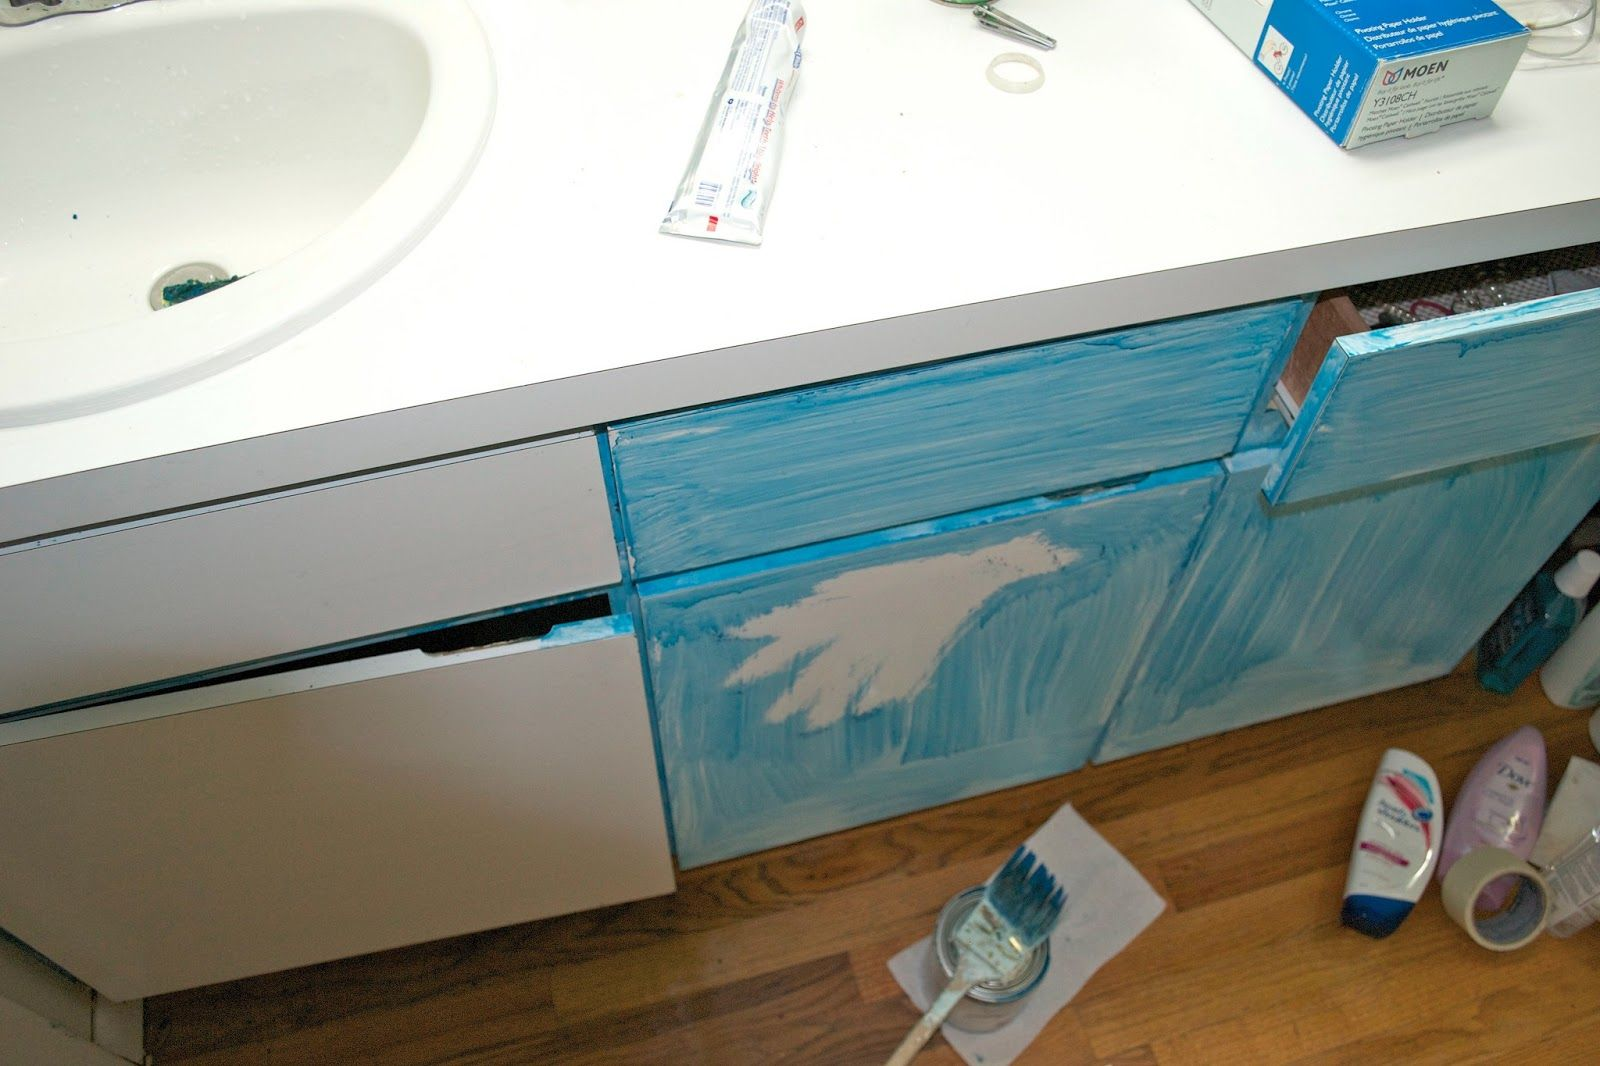 Seesaws And Sawhorses Painting A Laminate Vanity Bathroom - Painting bathroom vanity laminate